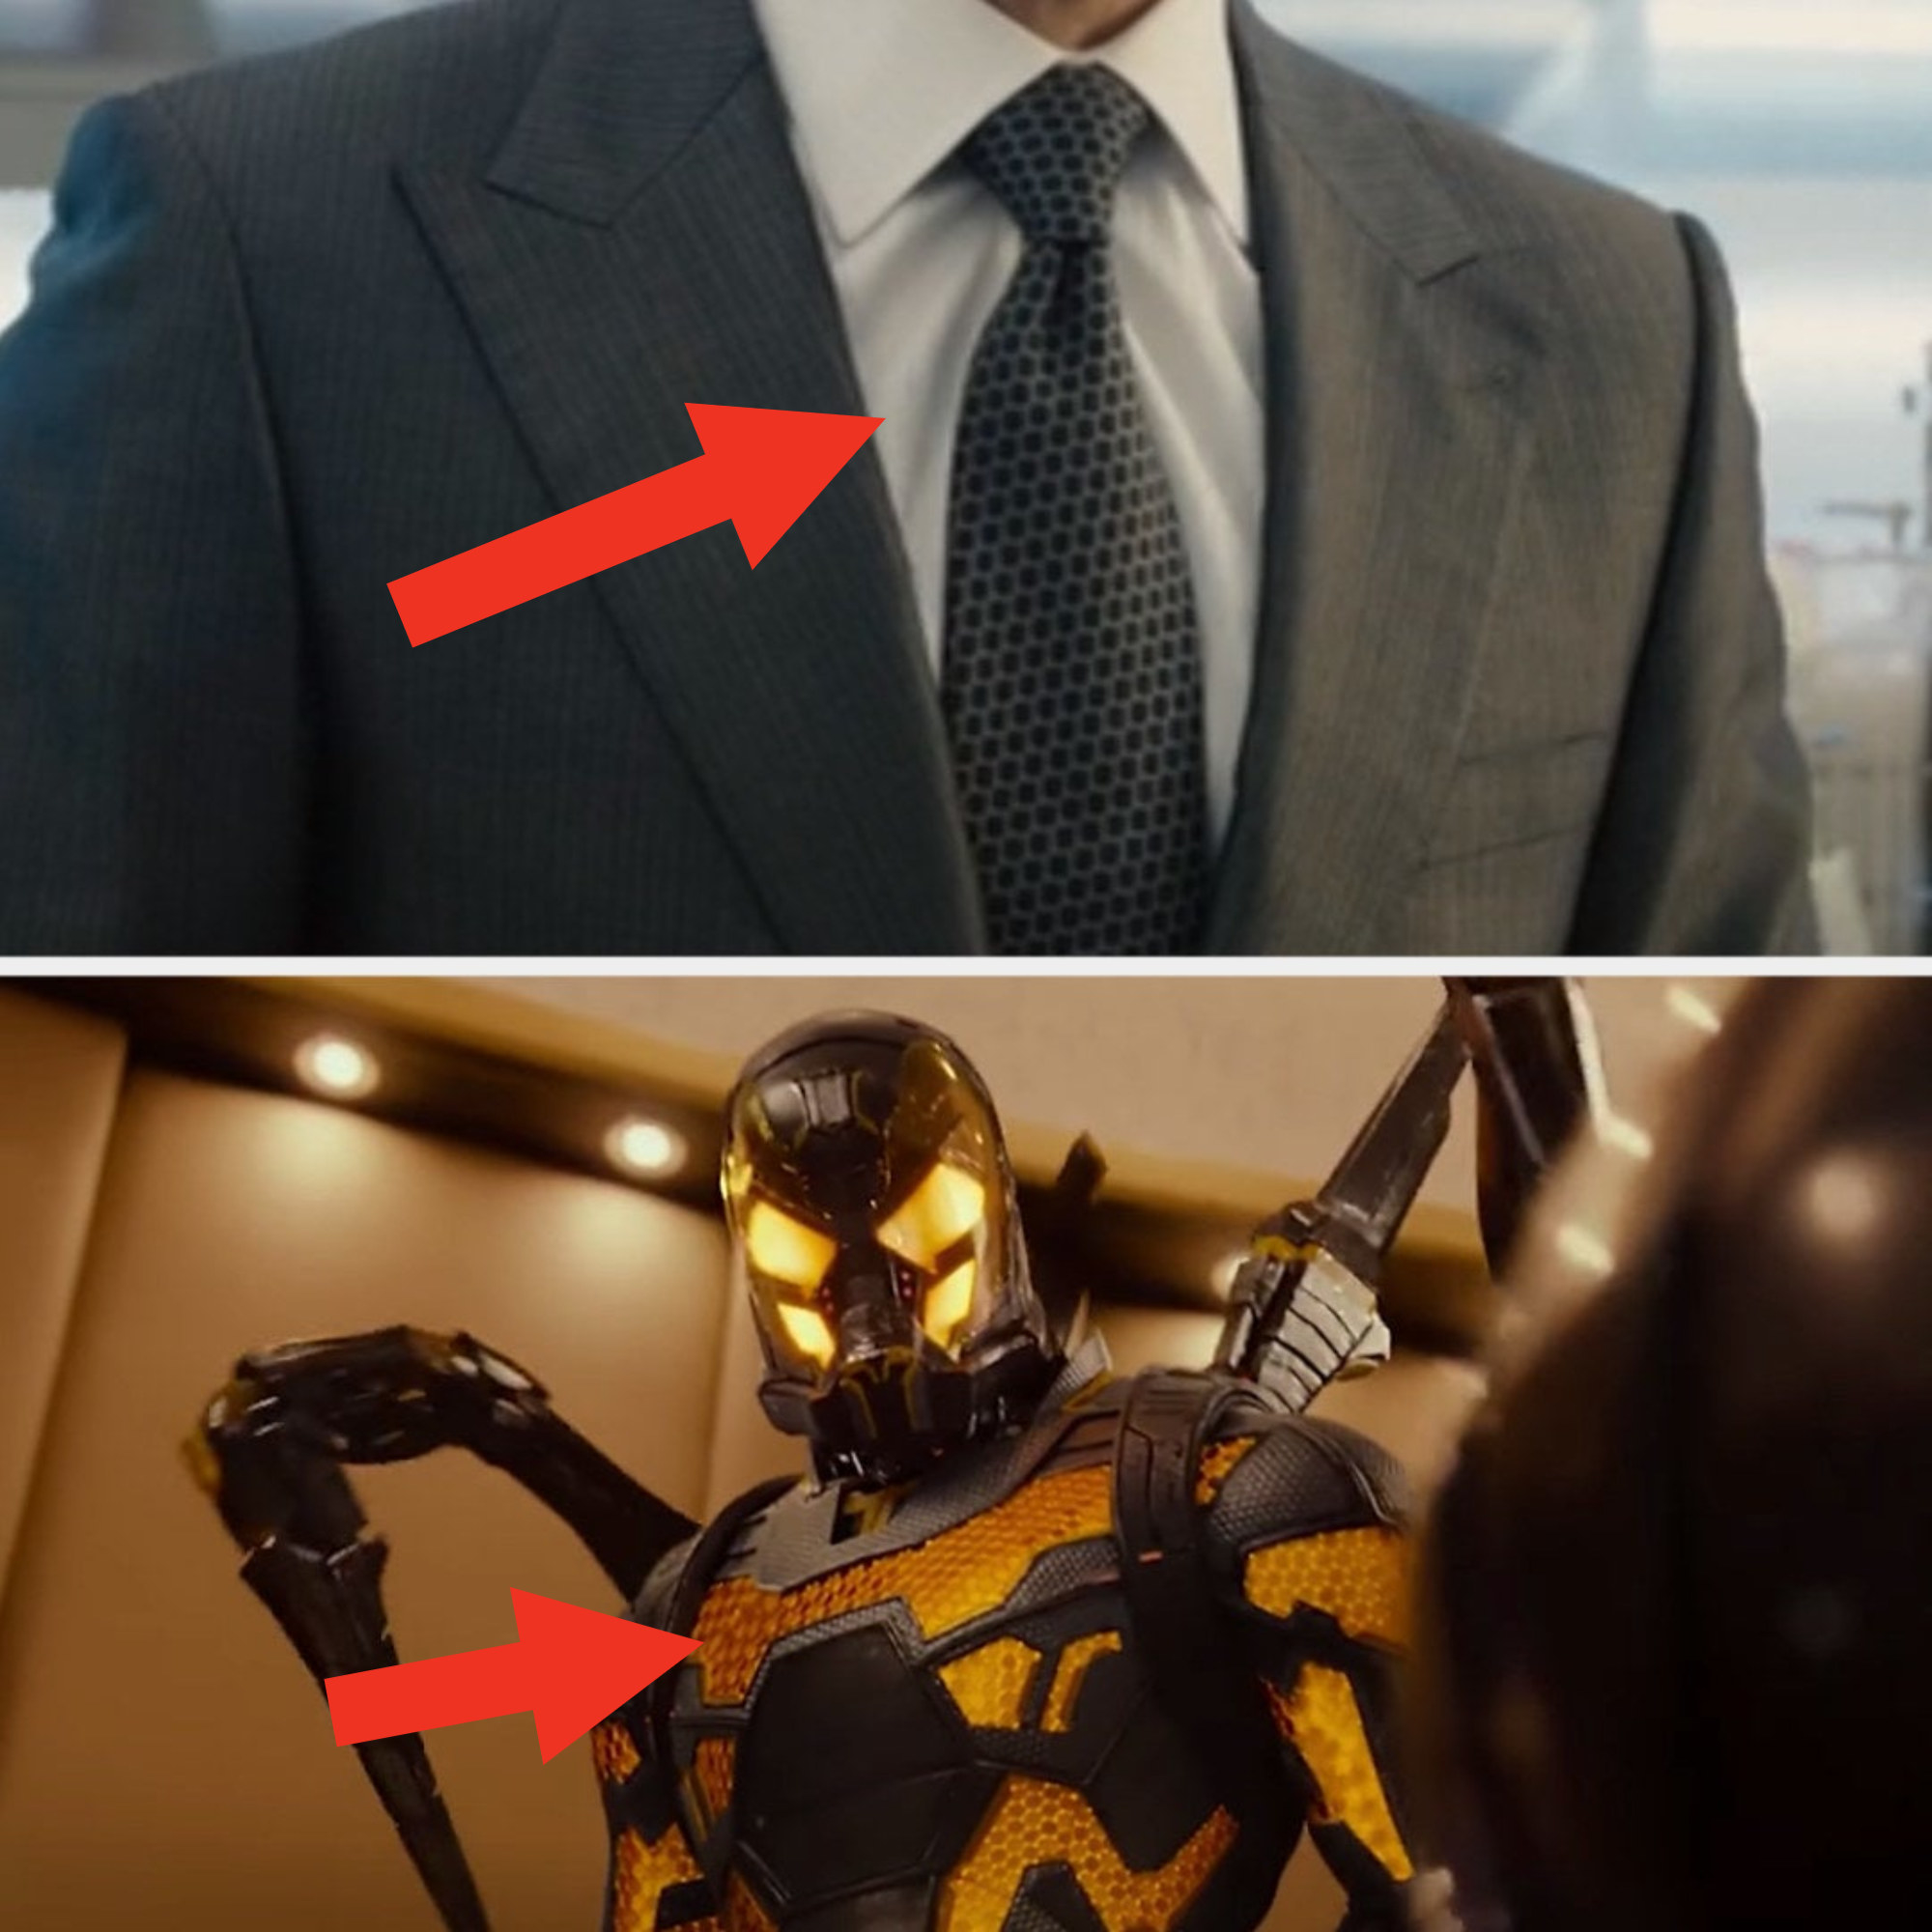 Darren wearing a tie with hexagonal patterns and then him later in the Yellowjacket suit